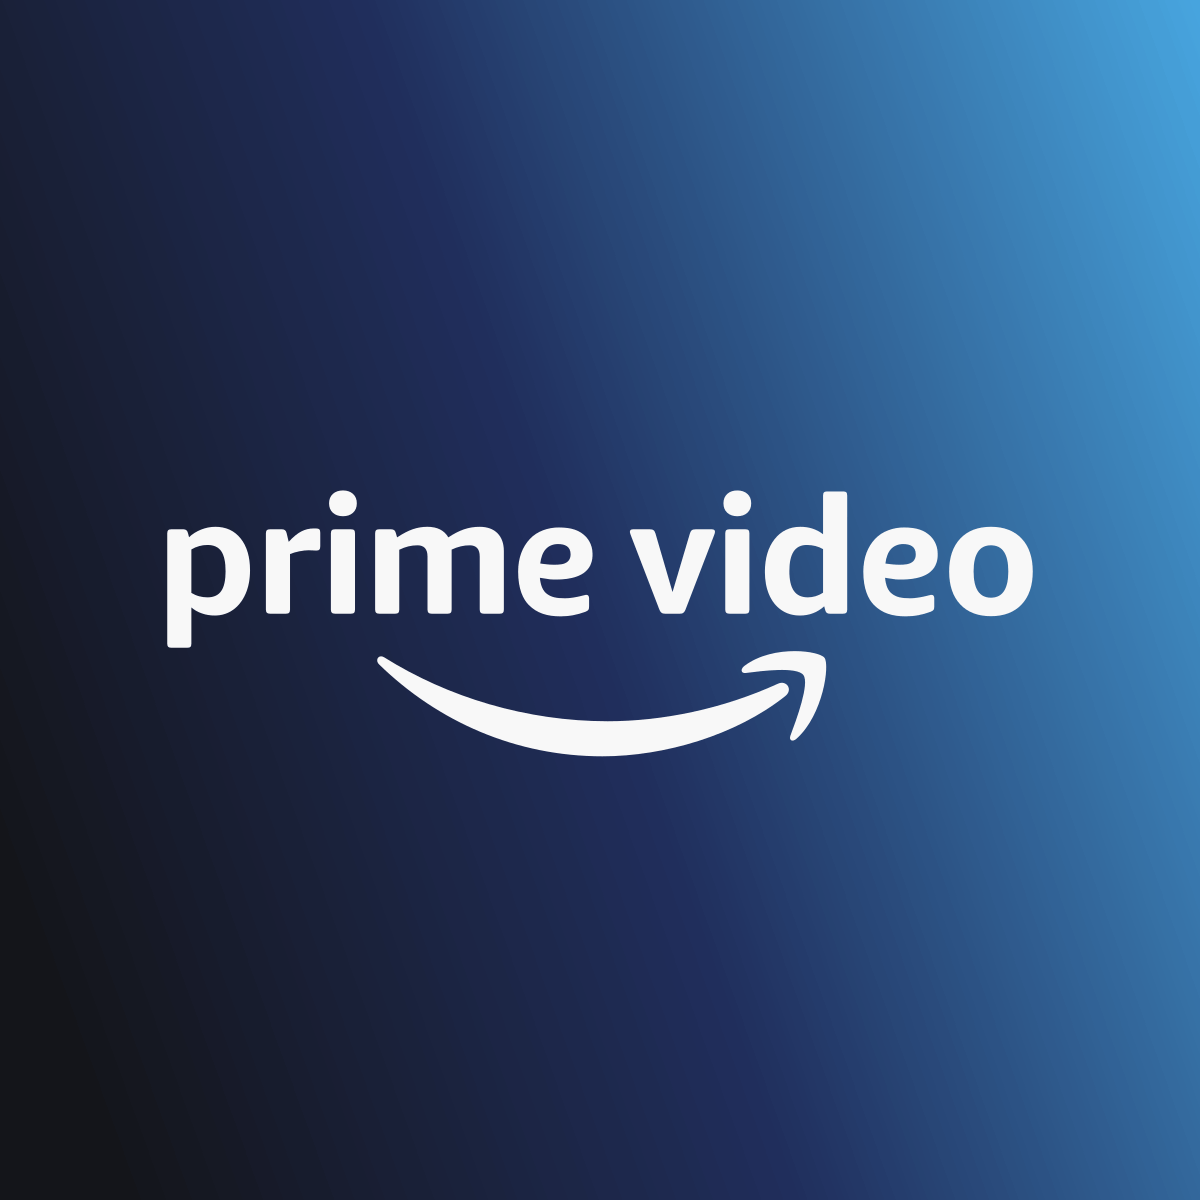 Get The Prime Video App To Watch On All Your Favorite Devices